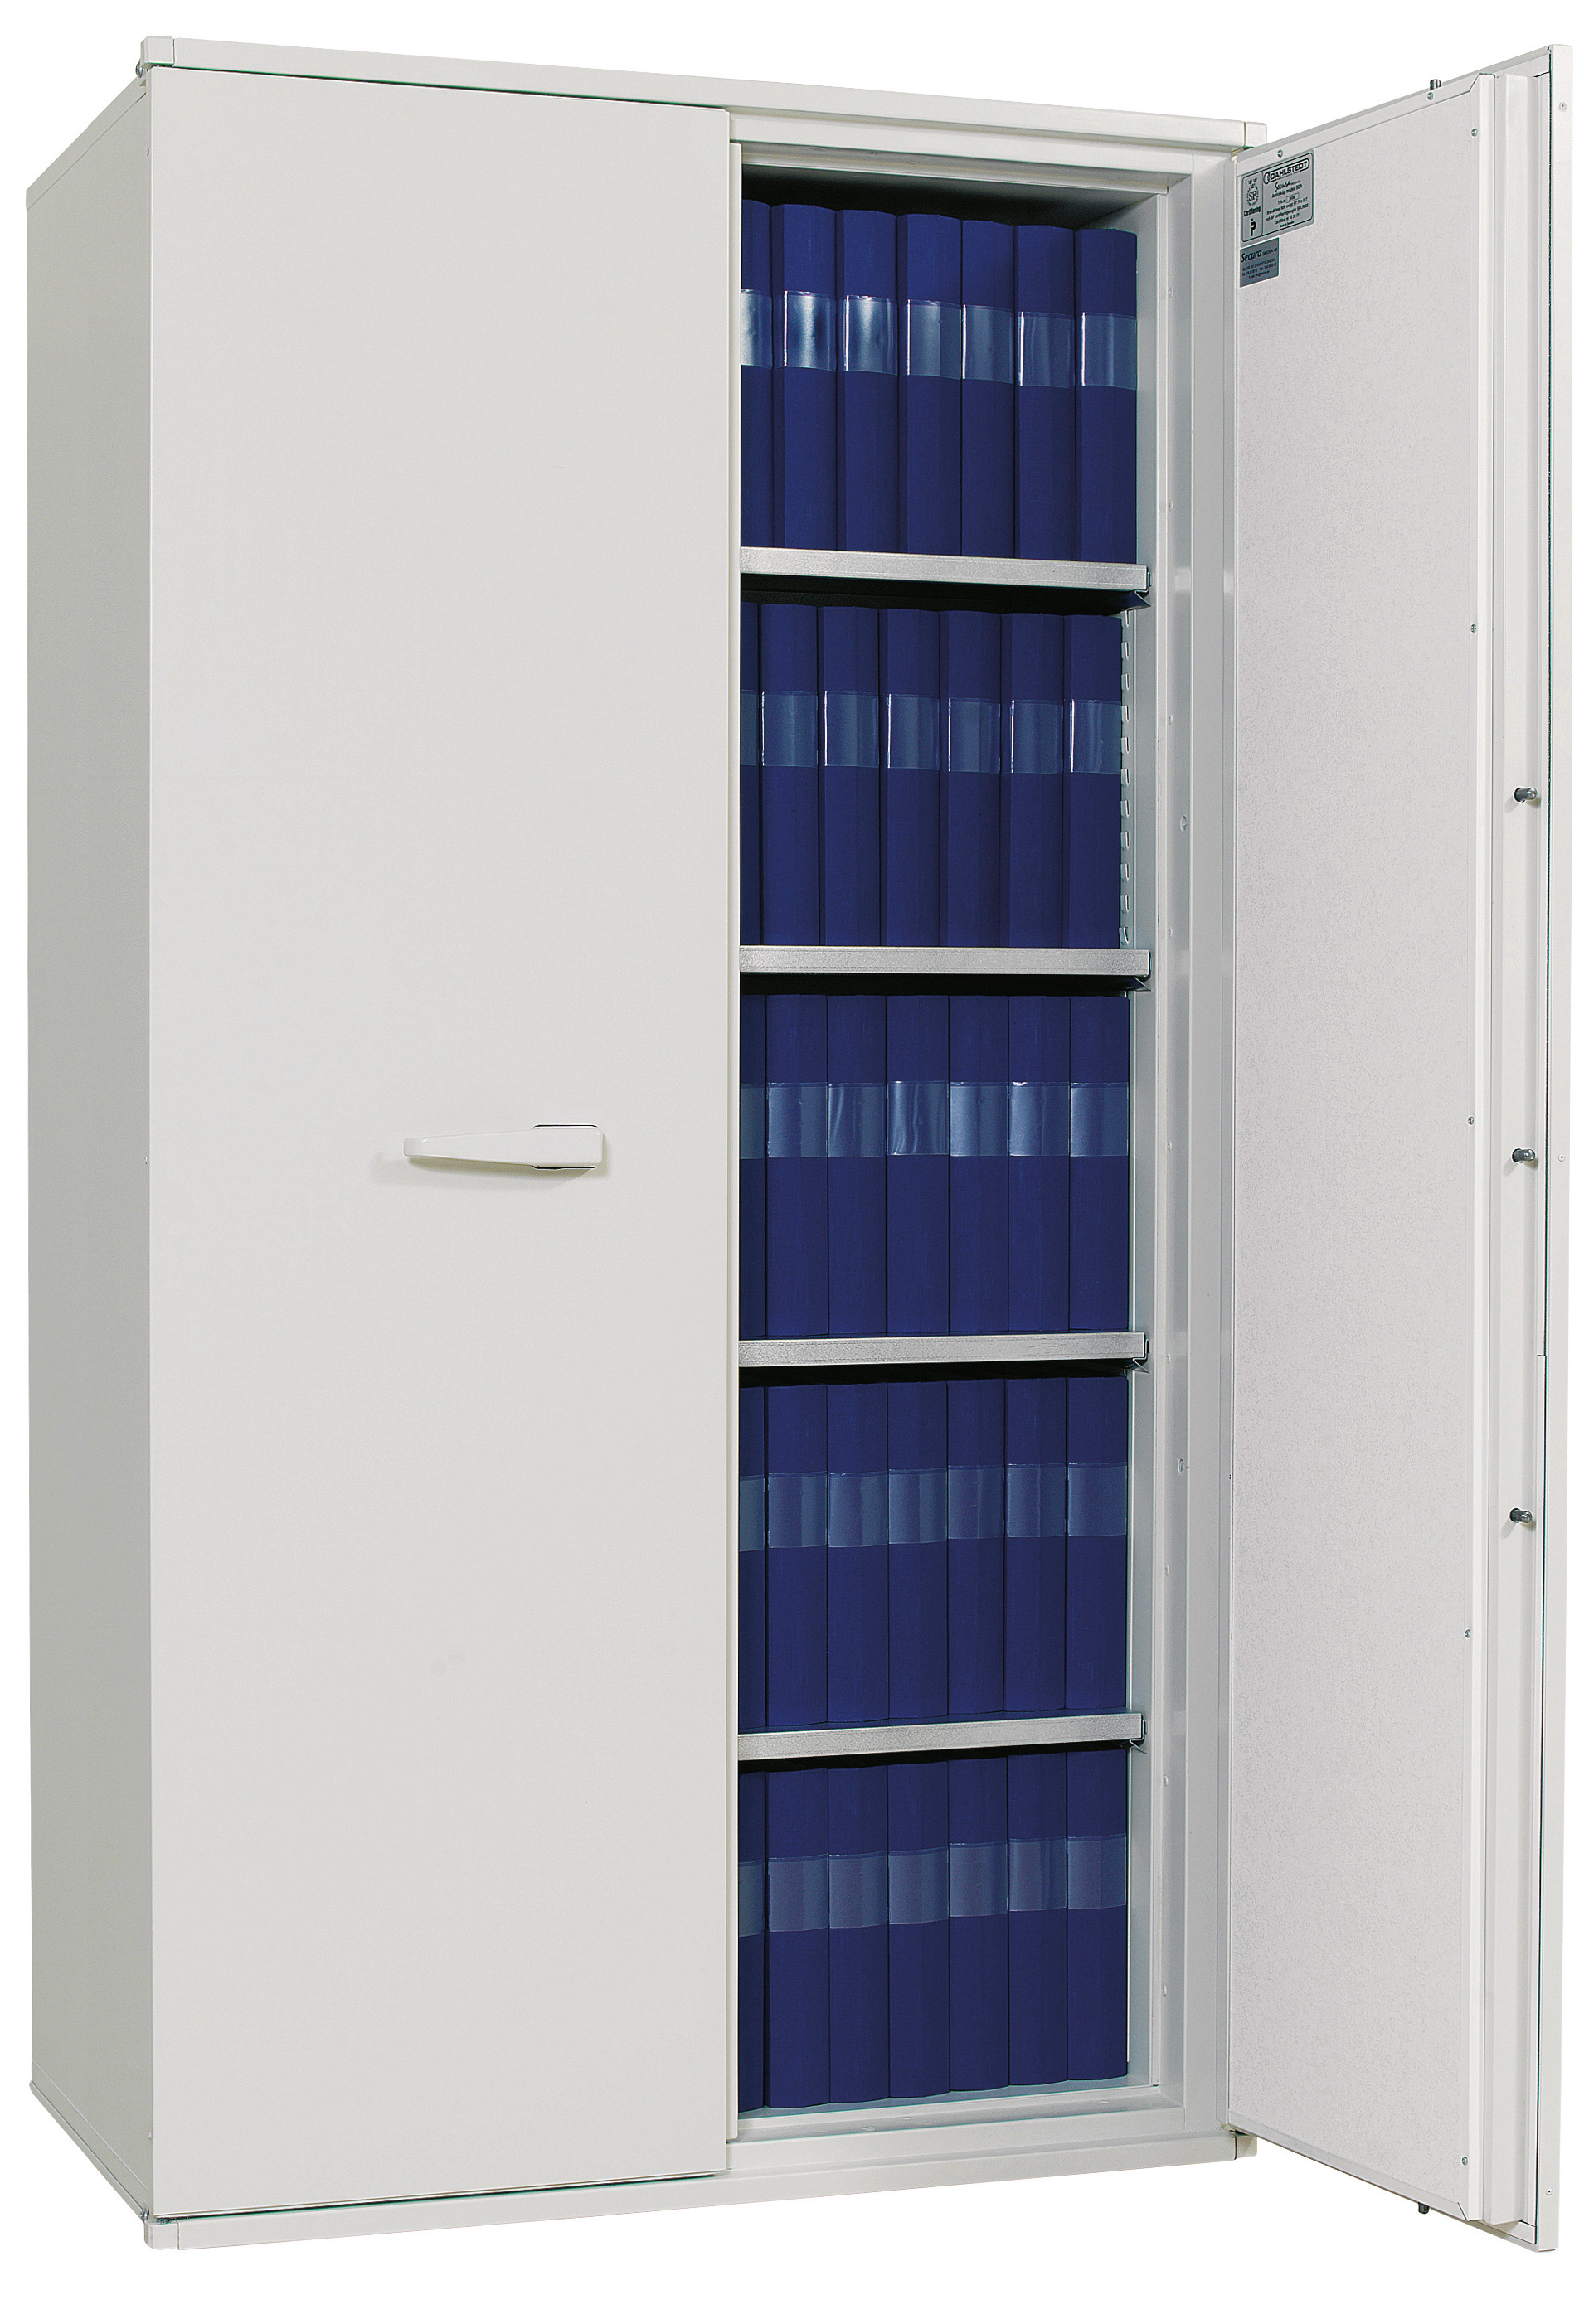 SA 990 SA 390 fire-rated document cabinet